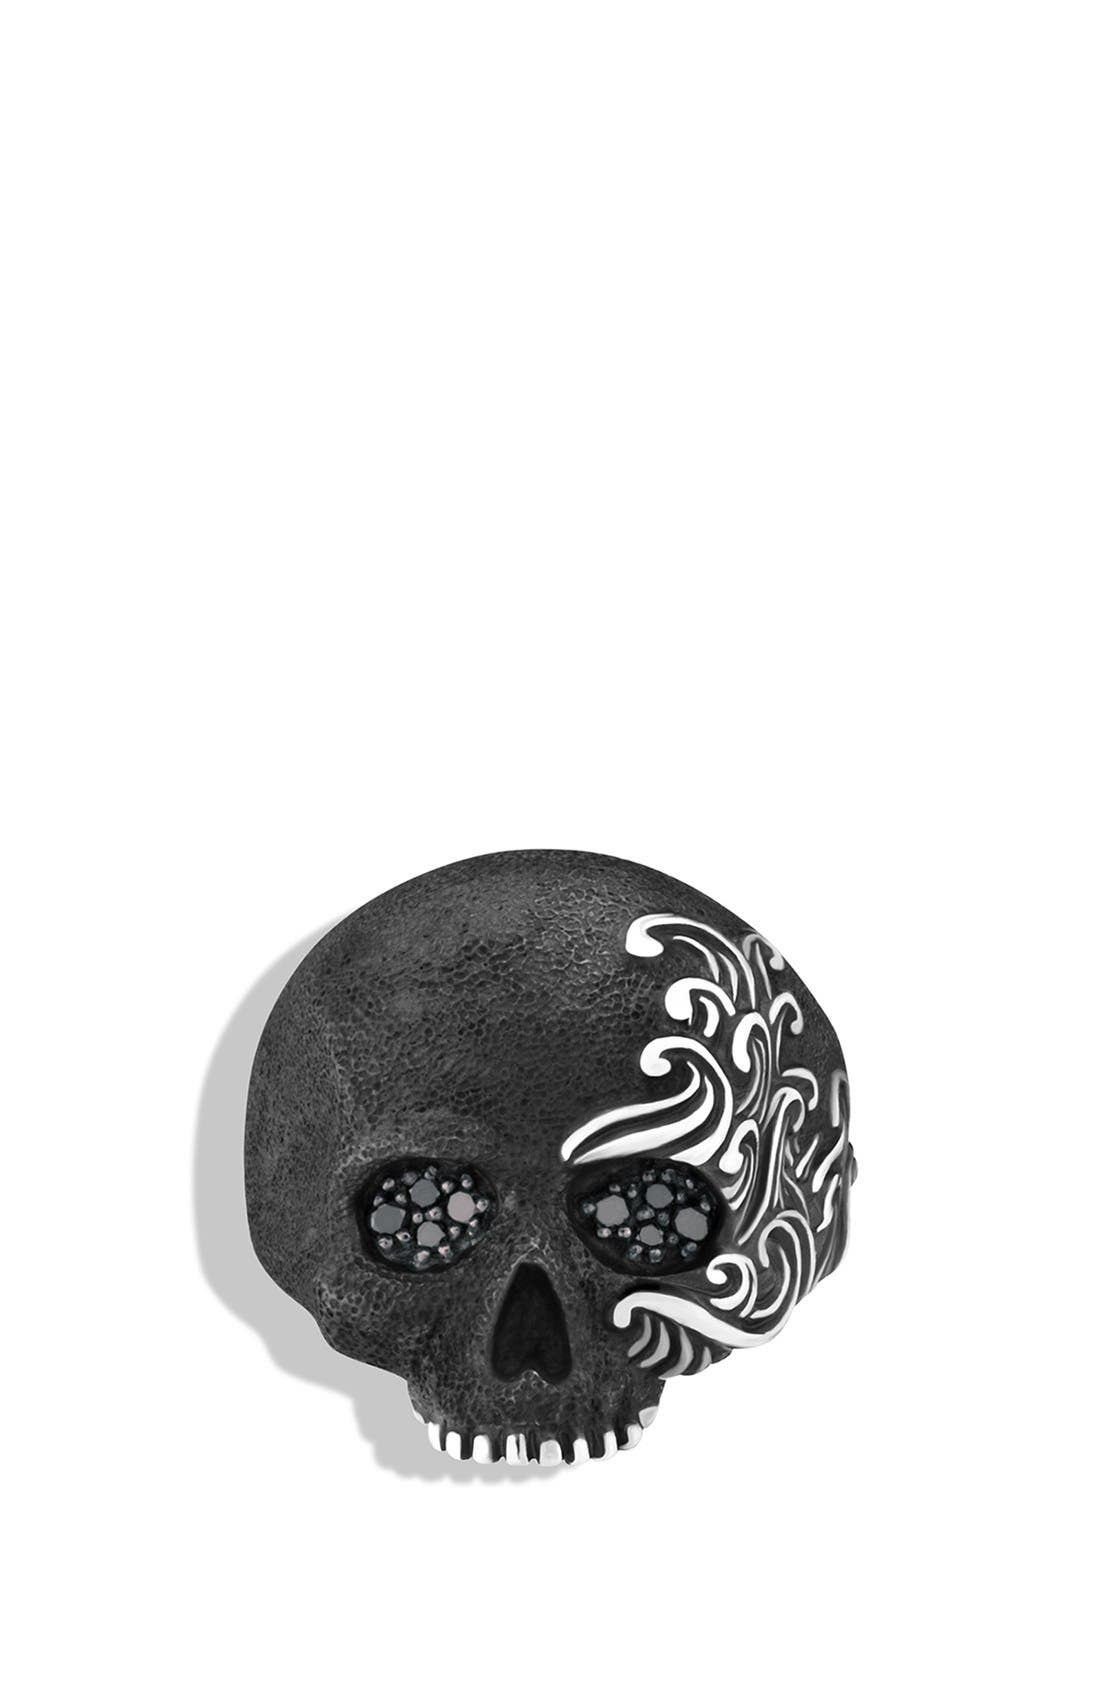 'Waves' Large Skull Ring with Black Diamonds,                             Alternate thumbnail 3, color,                             Black Diamond